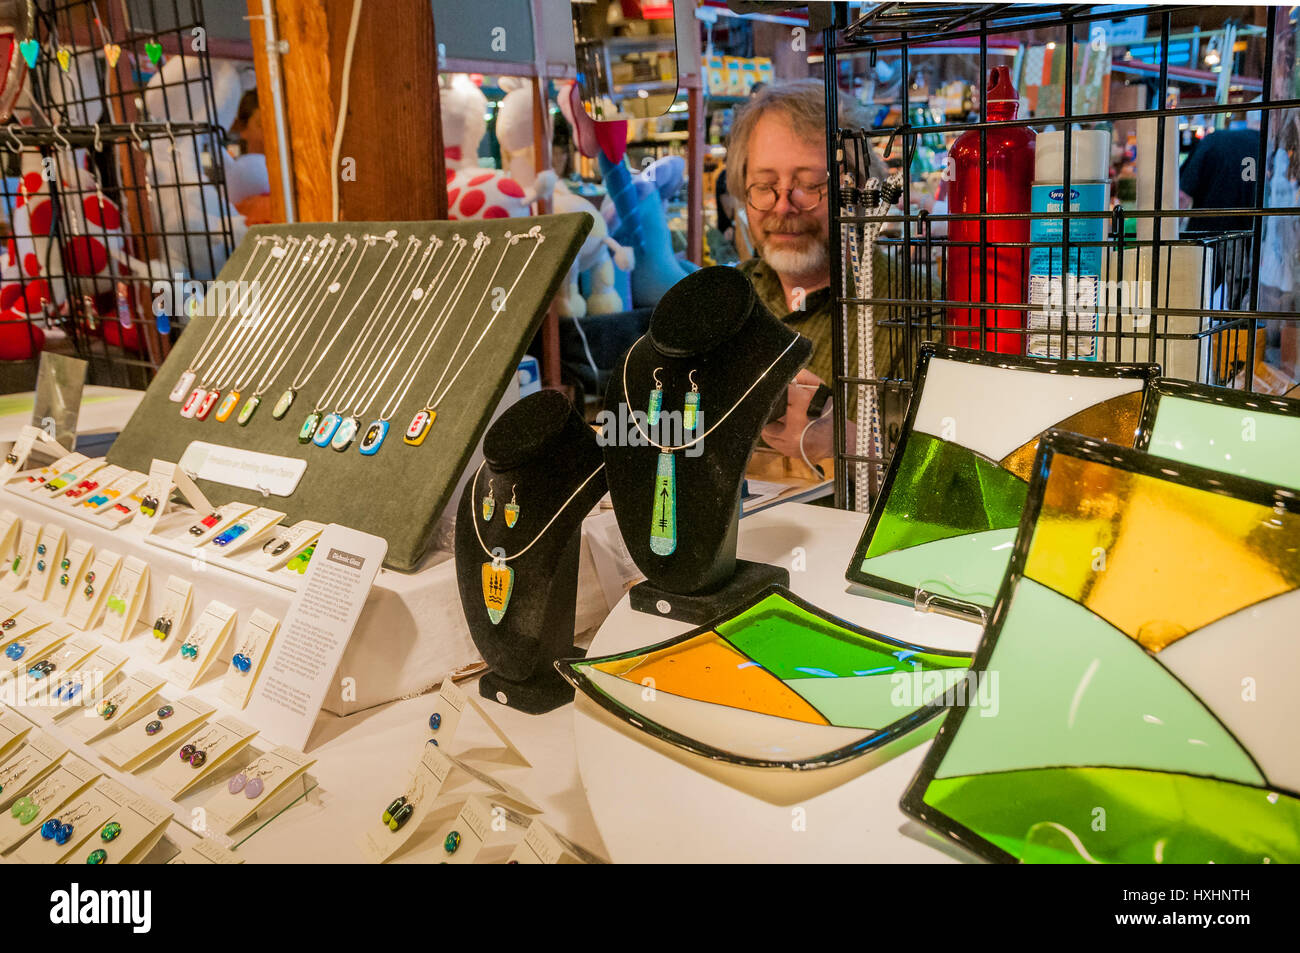 Fused glass, artisan table, Granville Island Public Market, Vancouver, British Columbia, Canada - Stock Image